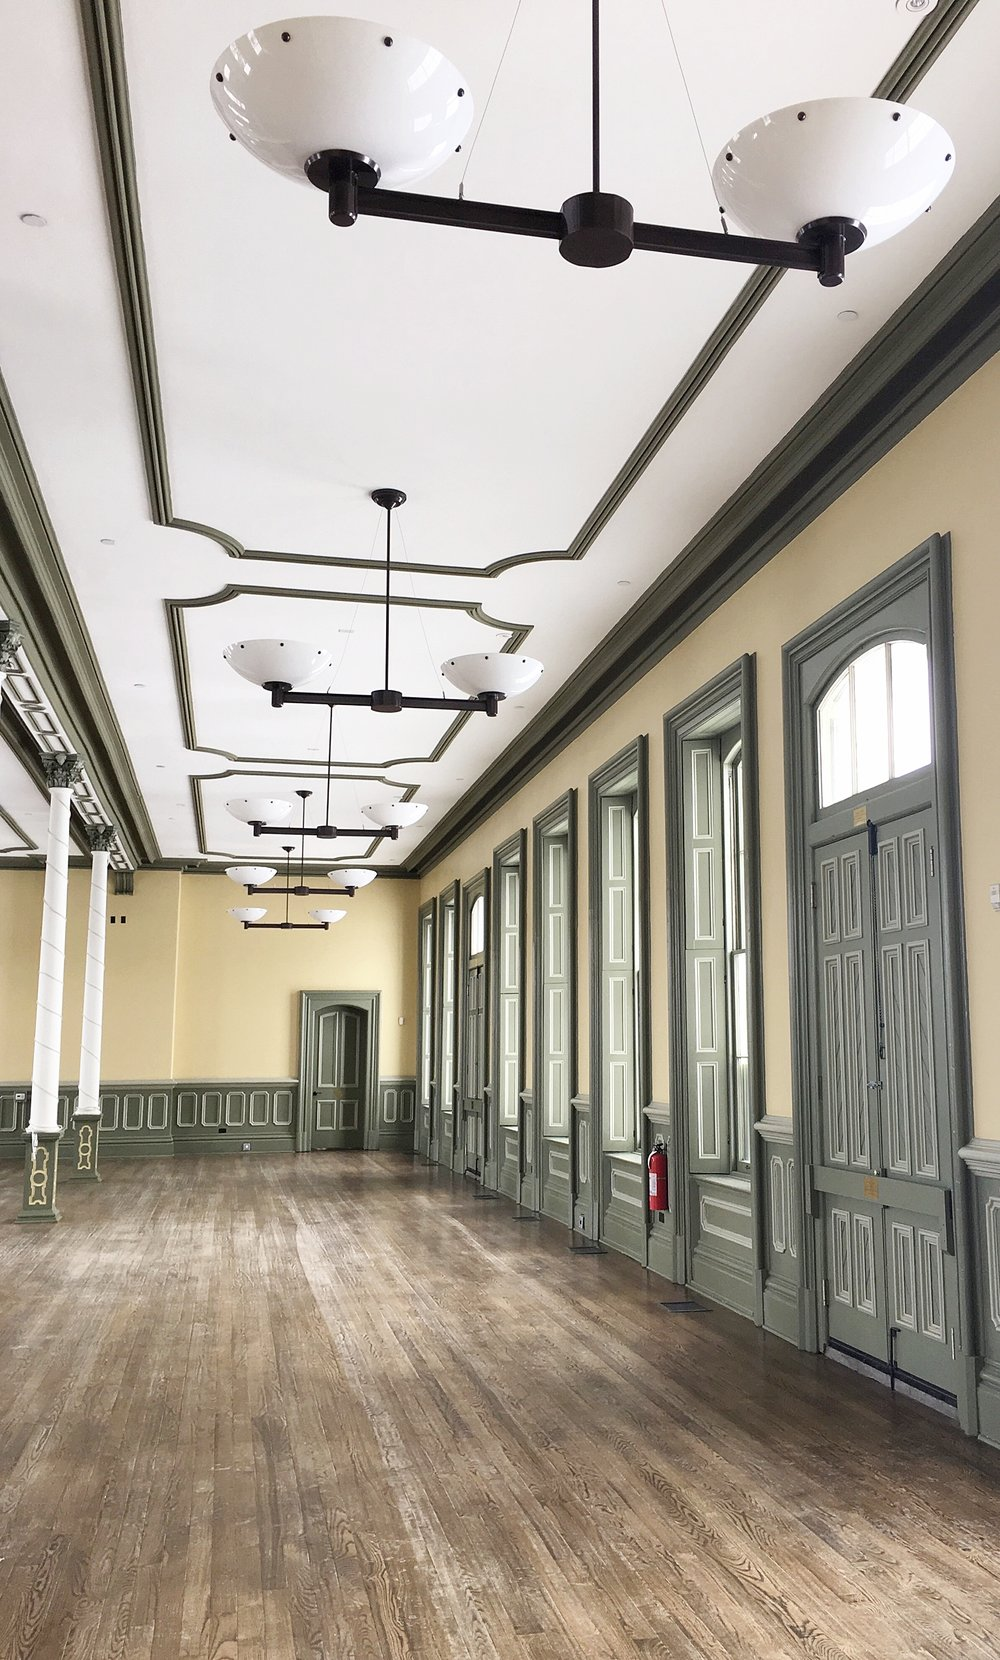 The CASO Station is a gorgeous building in downtown St. Thomas, one of the true architectural gems in the city, and the Anderson Room inside is a truly unique space for community events and wedding receptions.